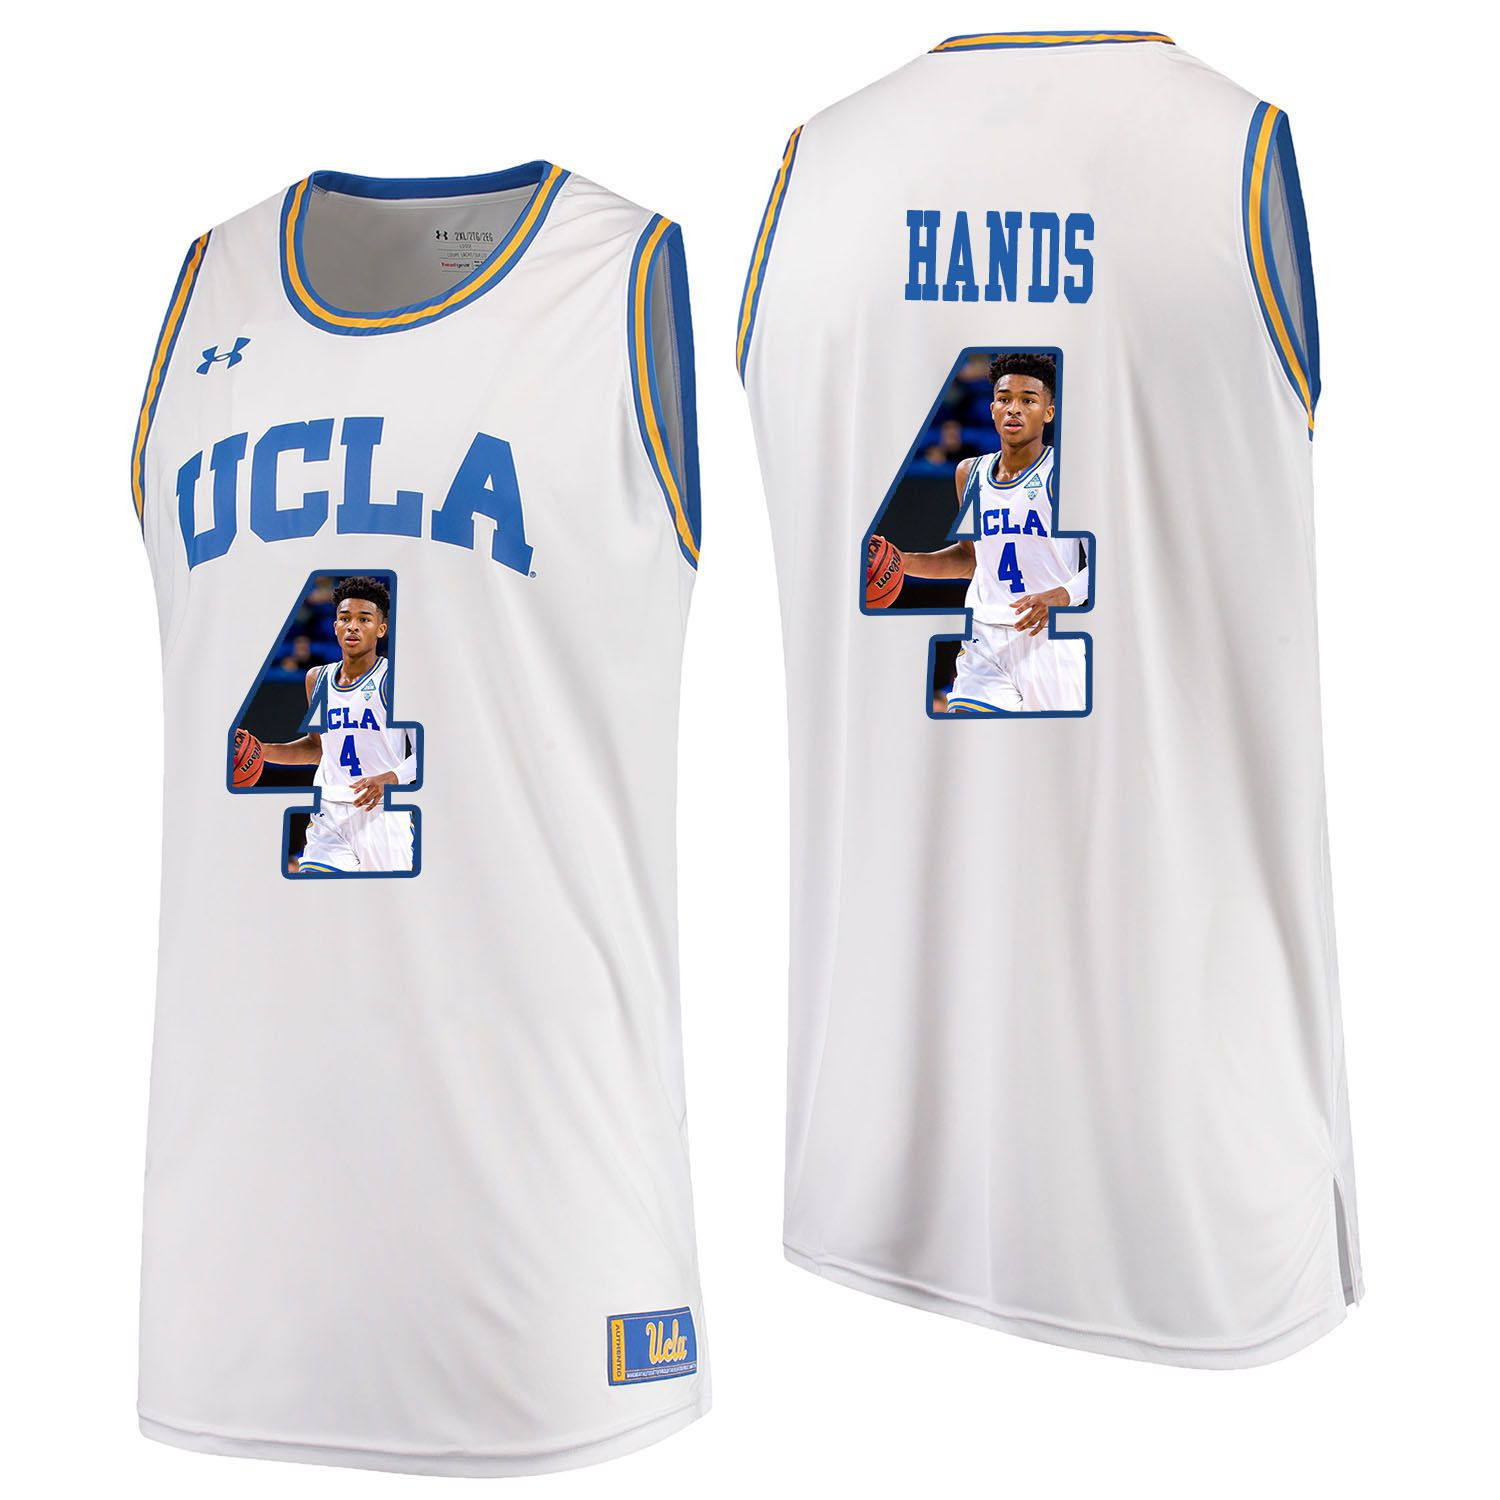 Men UCLA UA 4 Hands White Fashion Edition Customized NCAA Jerseys